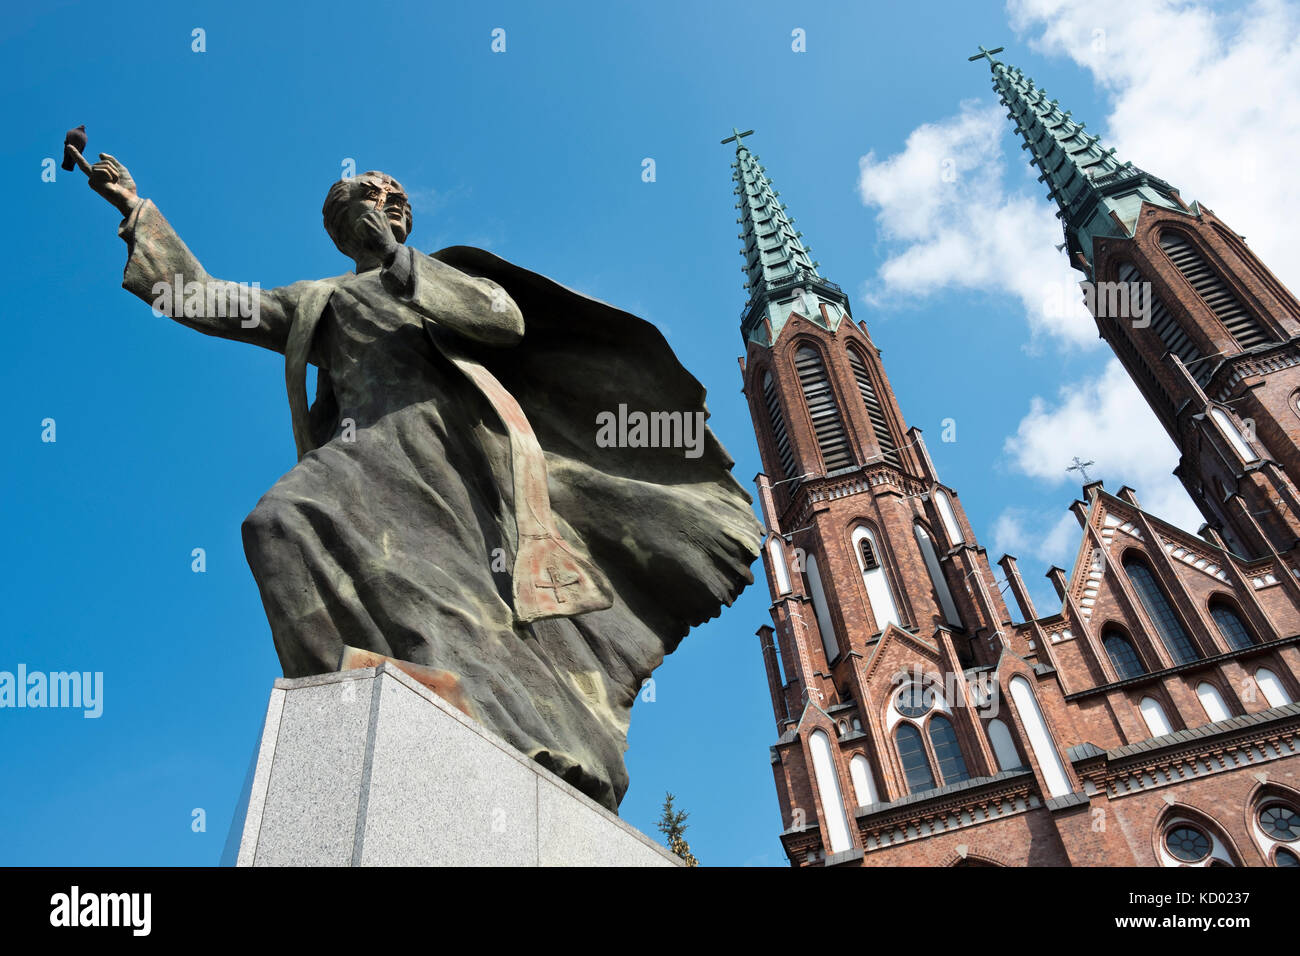 The statue of Father Ignacy Skorupka, outside St. Florian's Cathedral, in the Praga district of Warsaw, Poland. - Stock Image